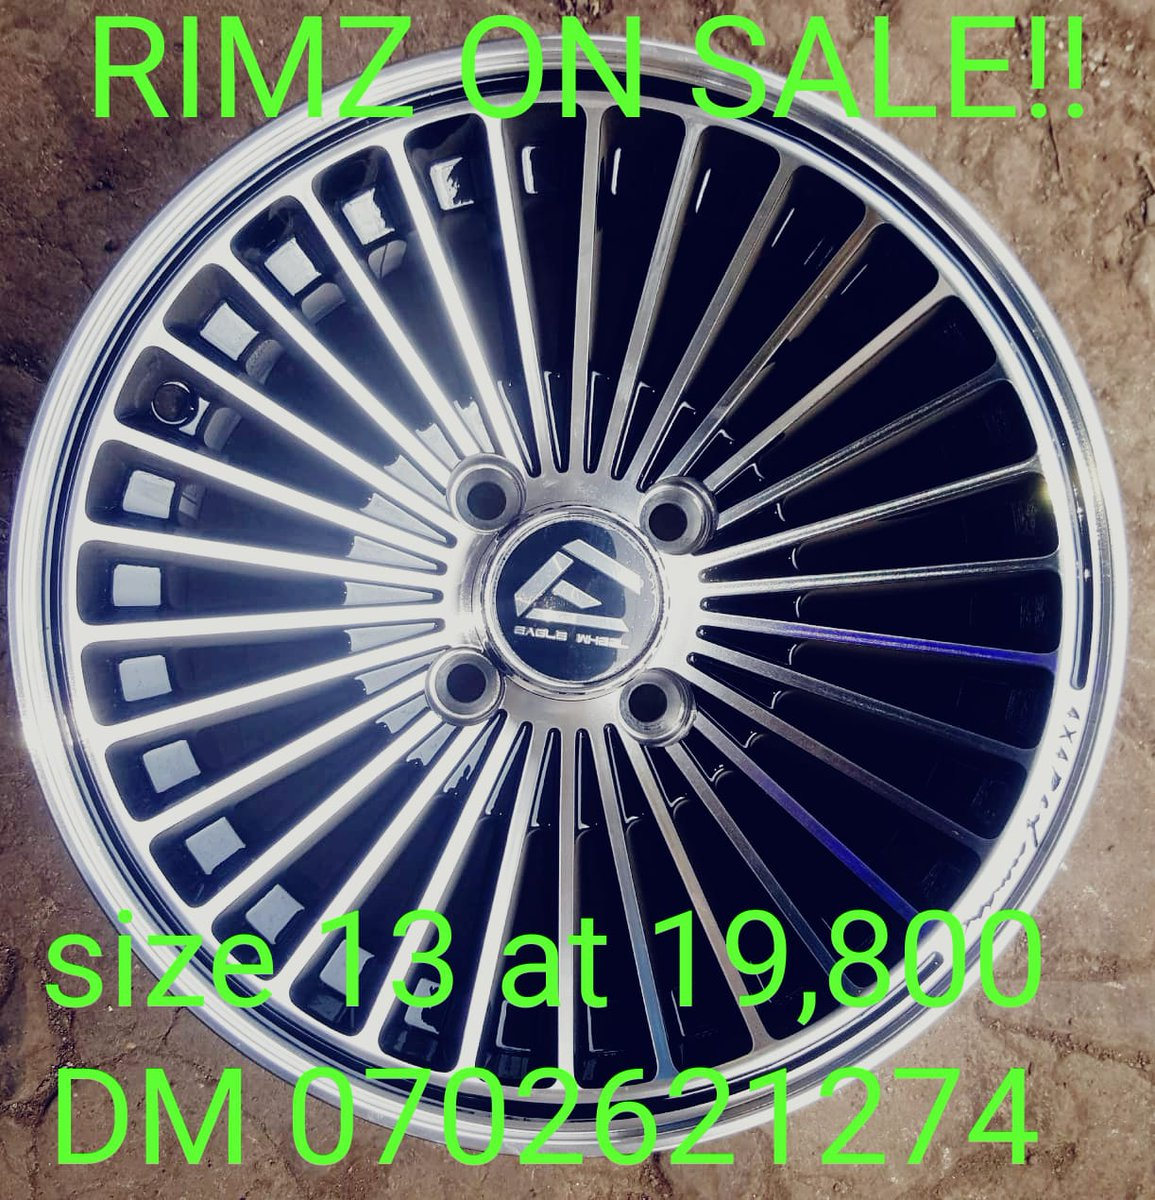 Affordable #Car #Tyres and #rimz on sale. All types, Japan and China made available. Contact 0702621274.pic.twitter.com/NP5vZwK5Zv